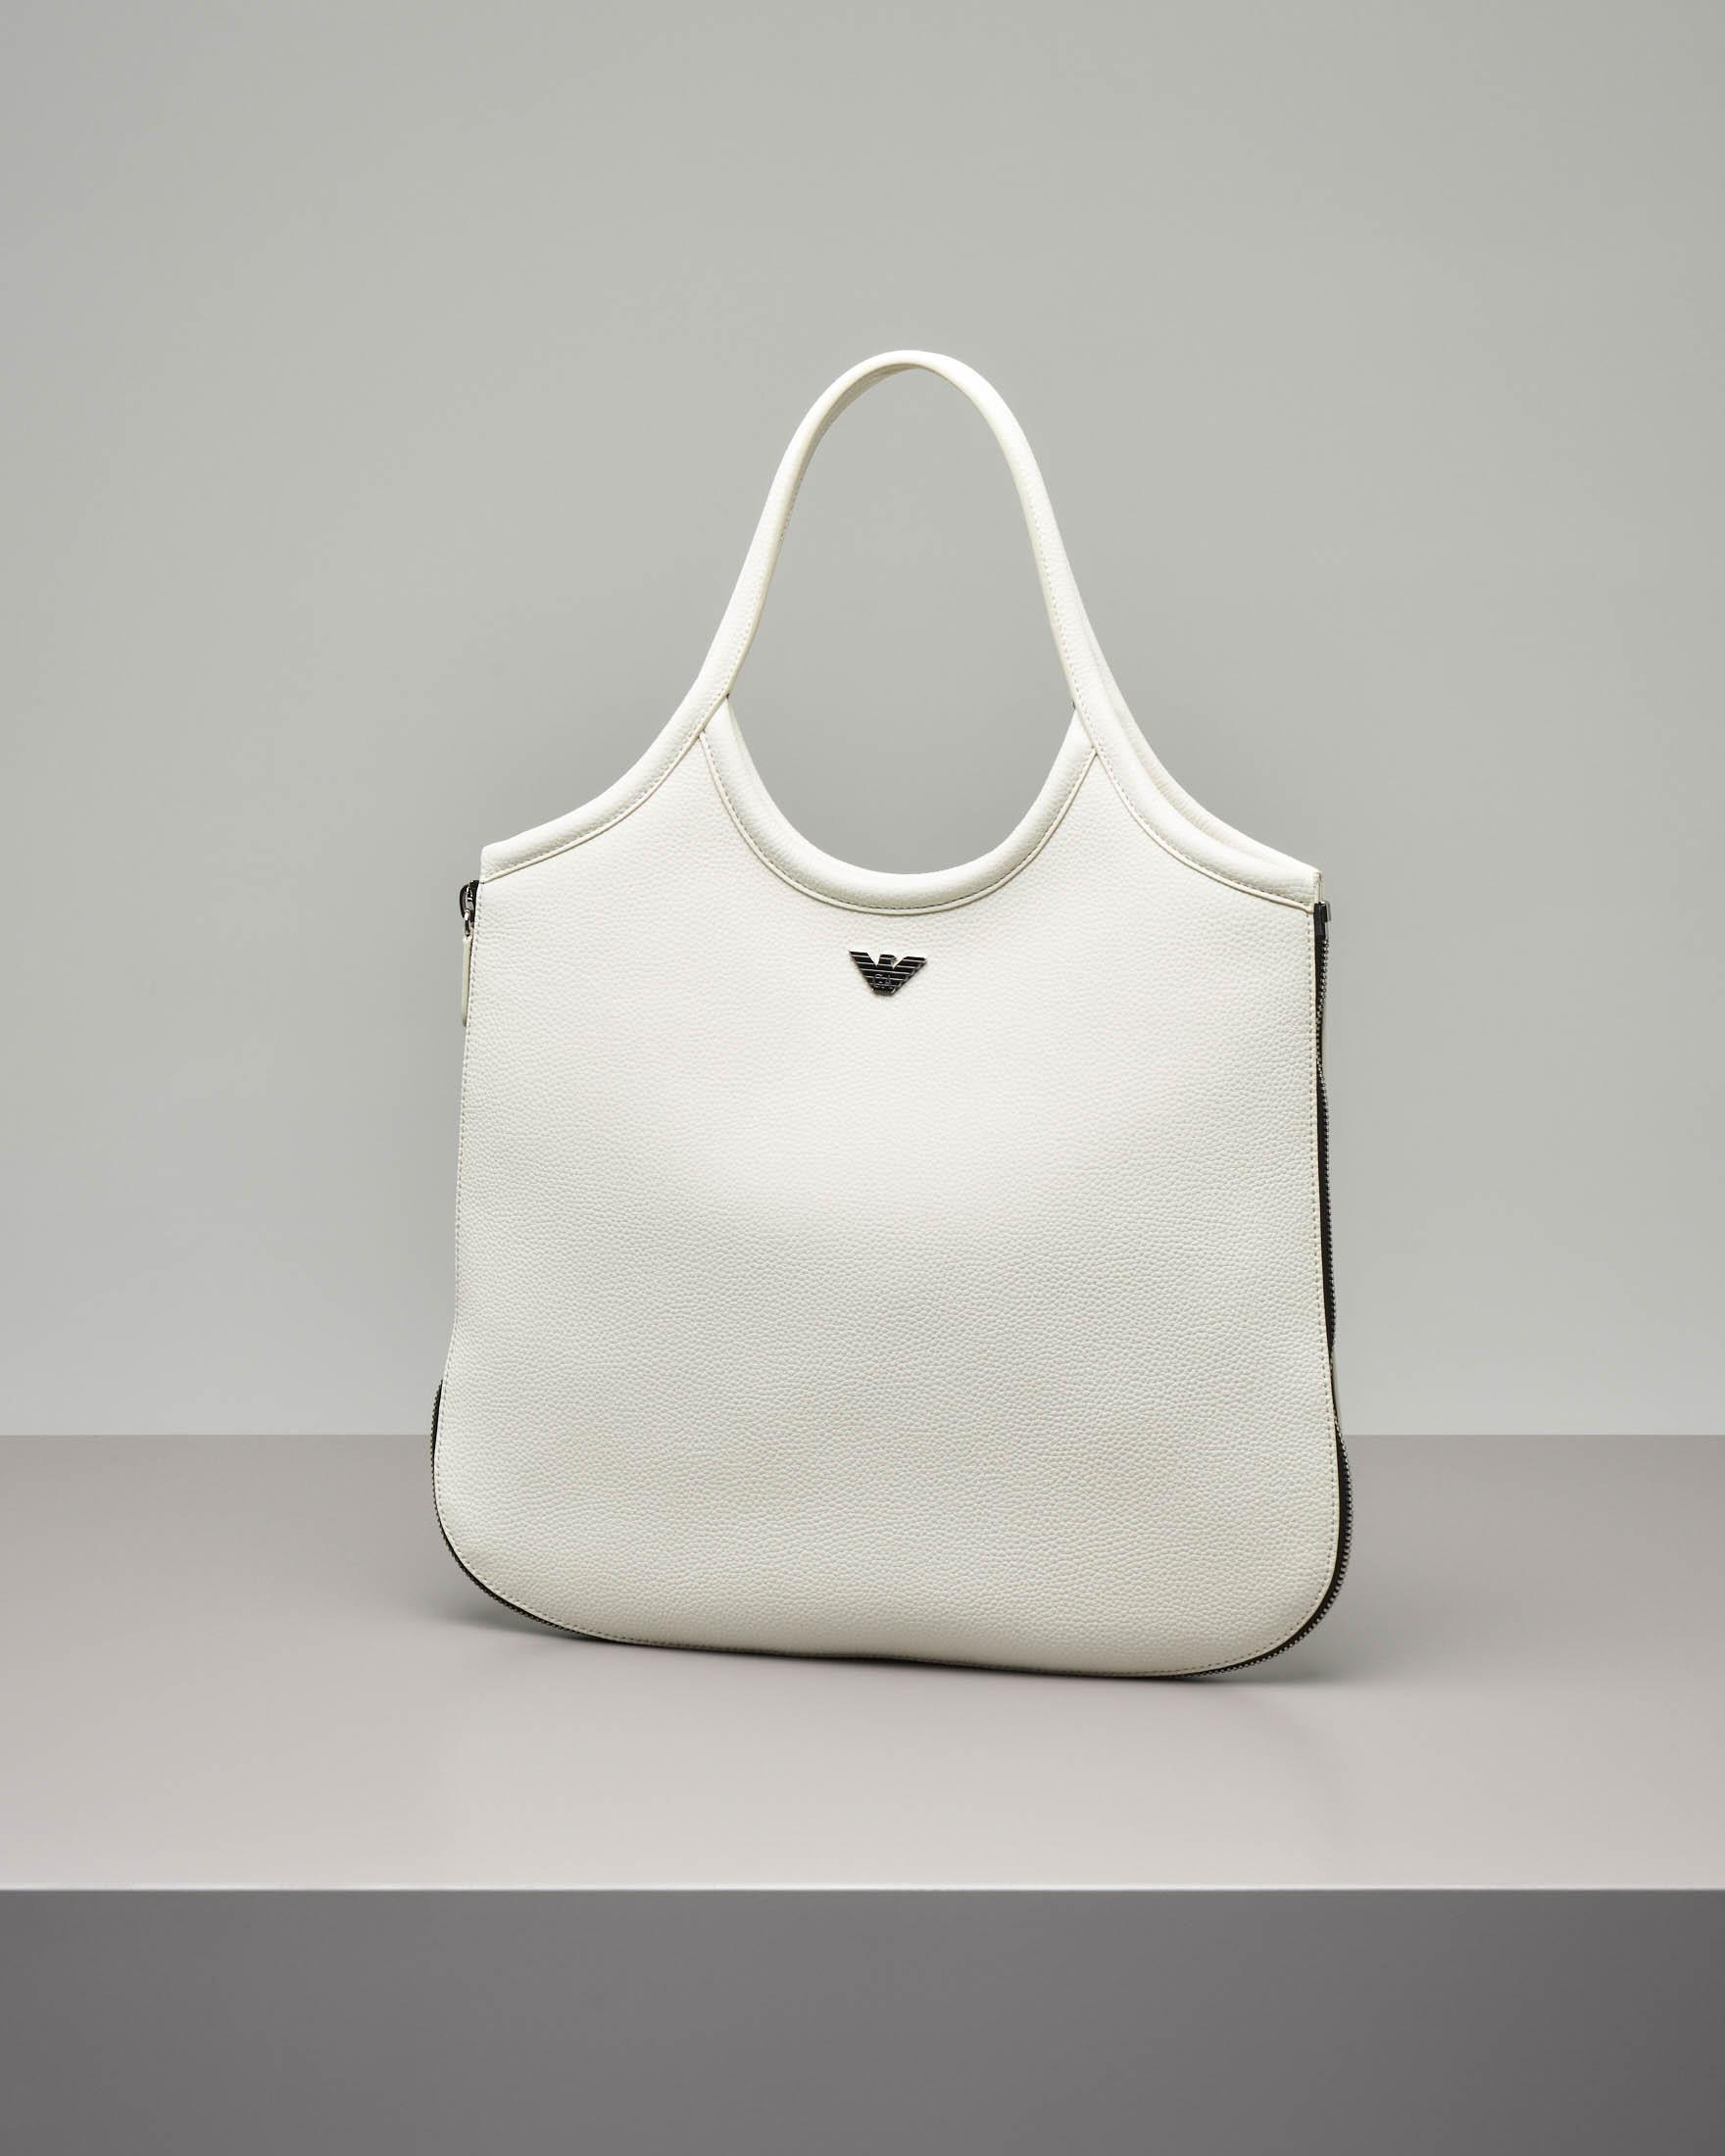 Borsa hobo in pelle color latte